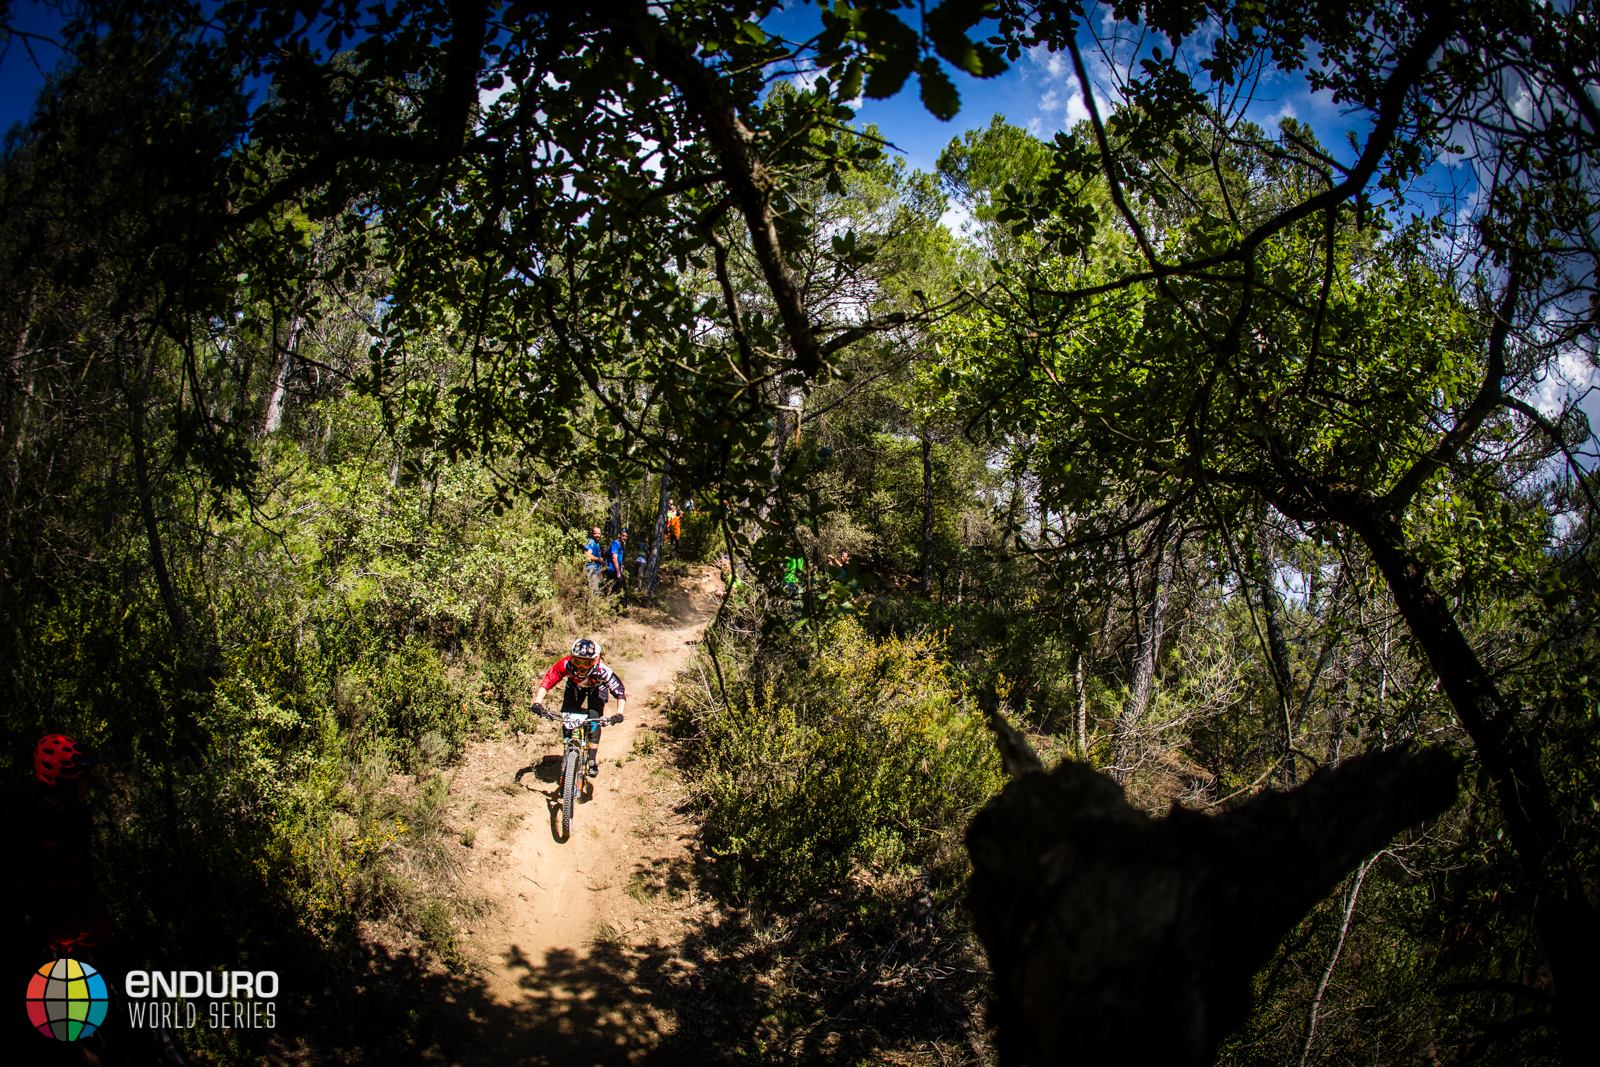 Andreane Lanther-Nadeau on stage seven. EWS round 7, Ainsa, Spain. Photo by Matt Wragg.